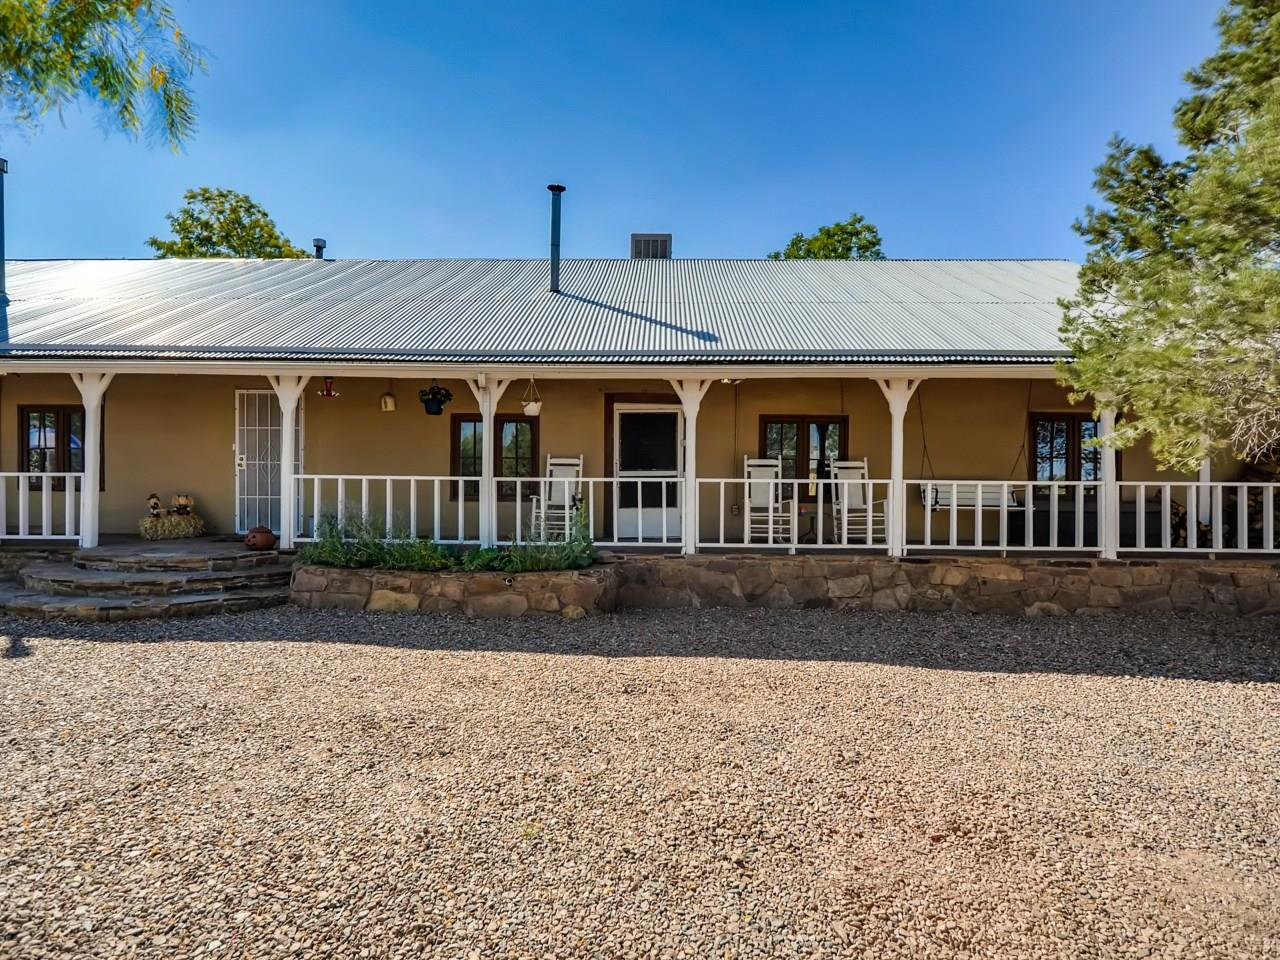 Genuine Adobe Hacienda Compound overlooking the historic church accessed by Route 66 & the Santa Fe Trail offering a variety of options with 2 legal lots of record. The 5039 +/-sf. main adobe home, partially built in the mid 1800's has 4 beds, 2 baths,5 fireplaces/stoves. Many of the walls are over 2 feet thick, portions of the structure, were the local mercantile store/post office. Scenes from movies All the Pretty Horses & Hi-Low Country were filmed at the property. Adobe rooms have served as office, music room, den, dining room, & living room.  Along with the historic grainery, there are 1366 +/- sf of covered portals, a garage and over 600 sf of storage area.  The 762 +/-sf. guest/apartment located to the east of the main house with bedroom, 2 ¾ baths, living/kitchen combo has offered rental income.  Just across the back courtyard, is the 454 +/-sf. shop/studio w/updated electric, tall ceilings & cement floor. Next to this building is a 249 +/-sf. adobe artist studio w/vigas. The 2nd lot, adjoined and across County Road B-41 C contains the Equestrian components.  An open 1934 +/-sf. barn with tall ceilings and double doors can accommodate a large number of horses. The 718 +/-sf. loafing shed w/metal piping contains 5 covered stalls, open areas and branding station. The 298 +/-sf. Tack room w/wood burning stove is a great spot after riding miles on adjoining BLM open land. A short distance to Pecos River, 40 minutes to Santa Fe 25 to Las Vegas.